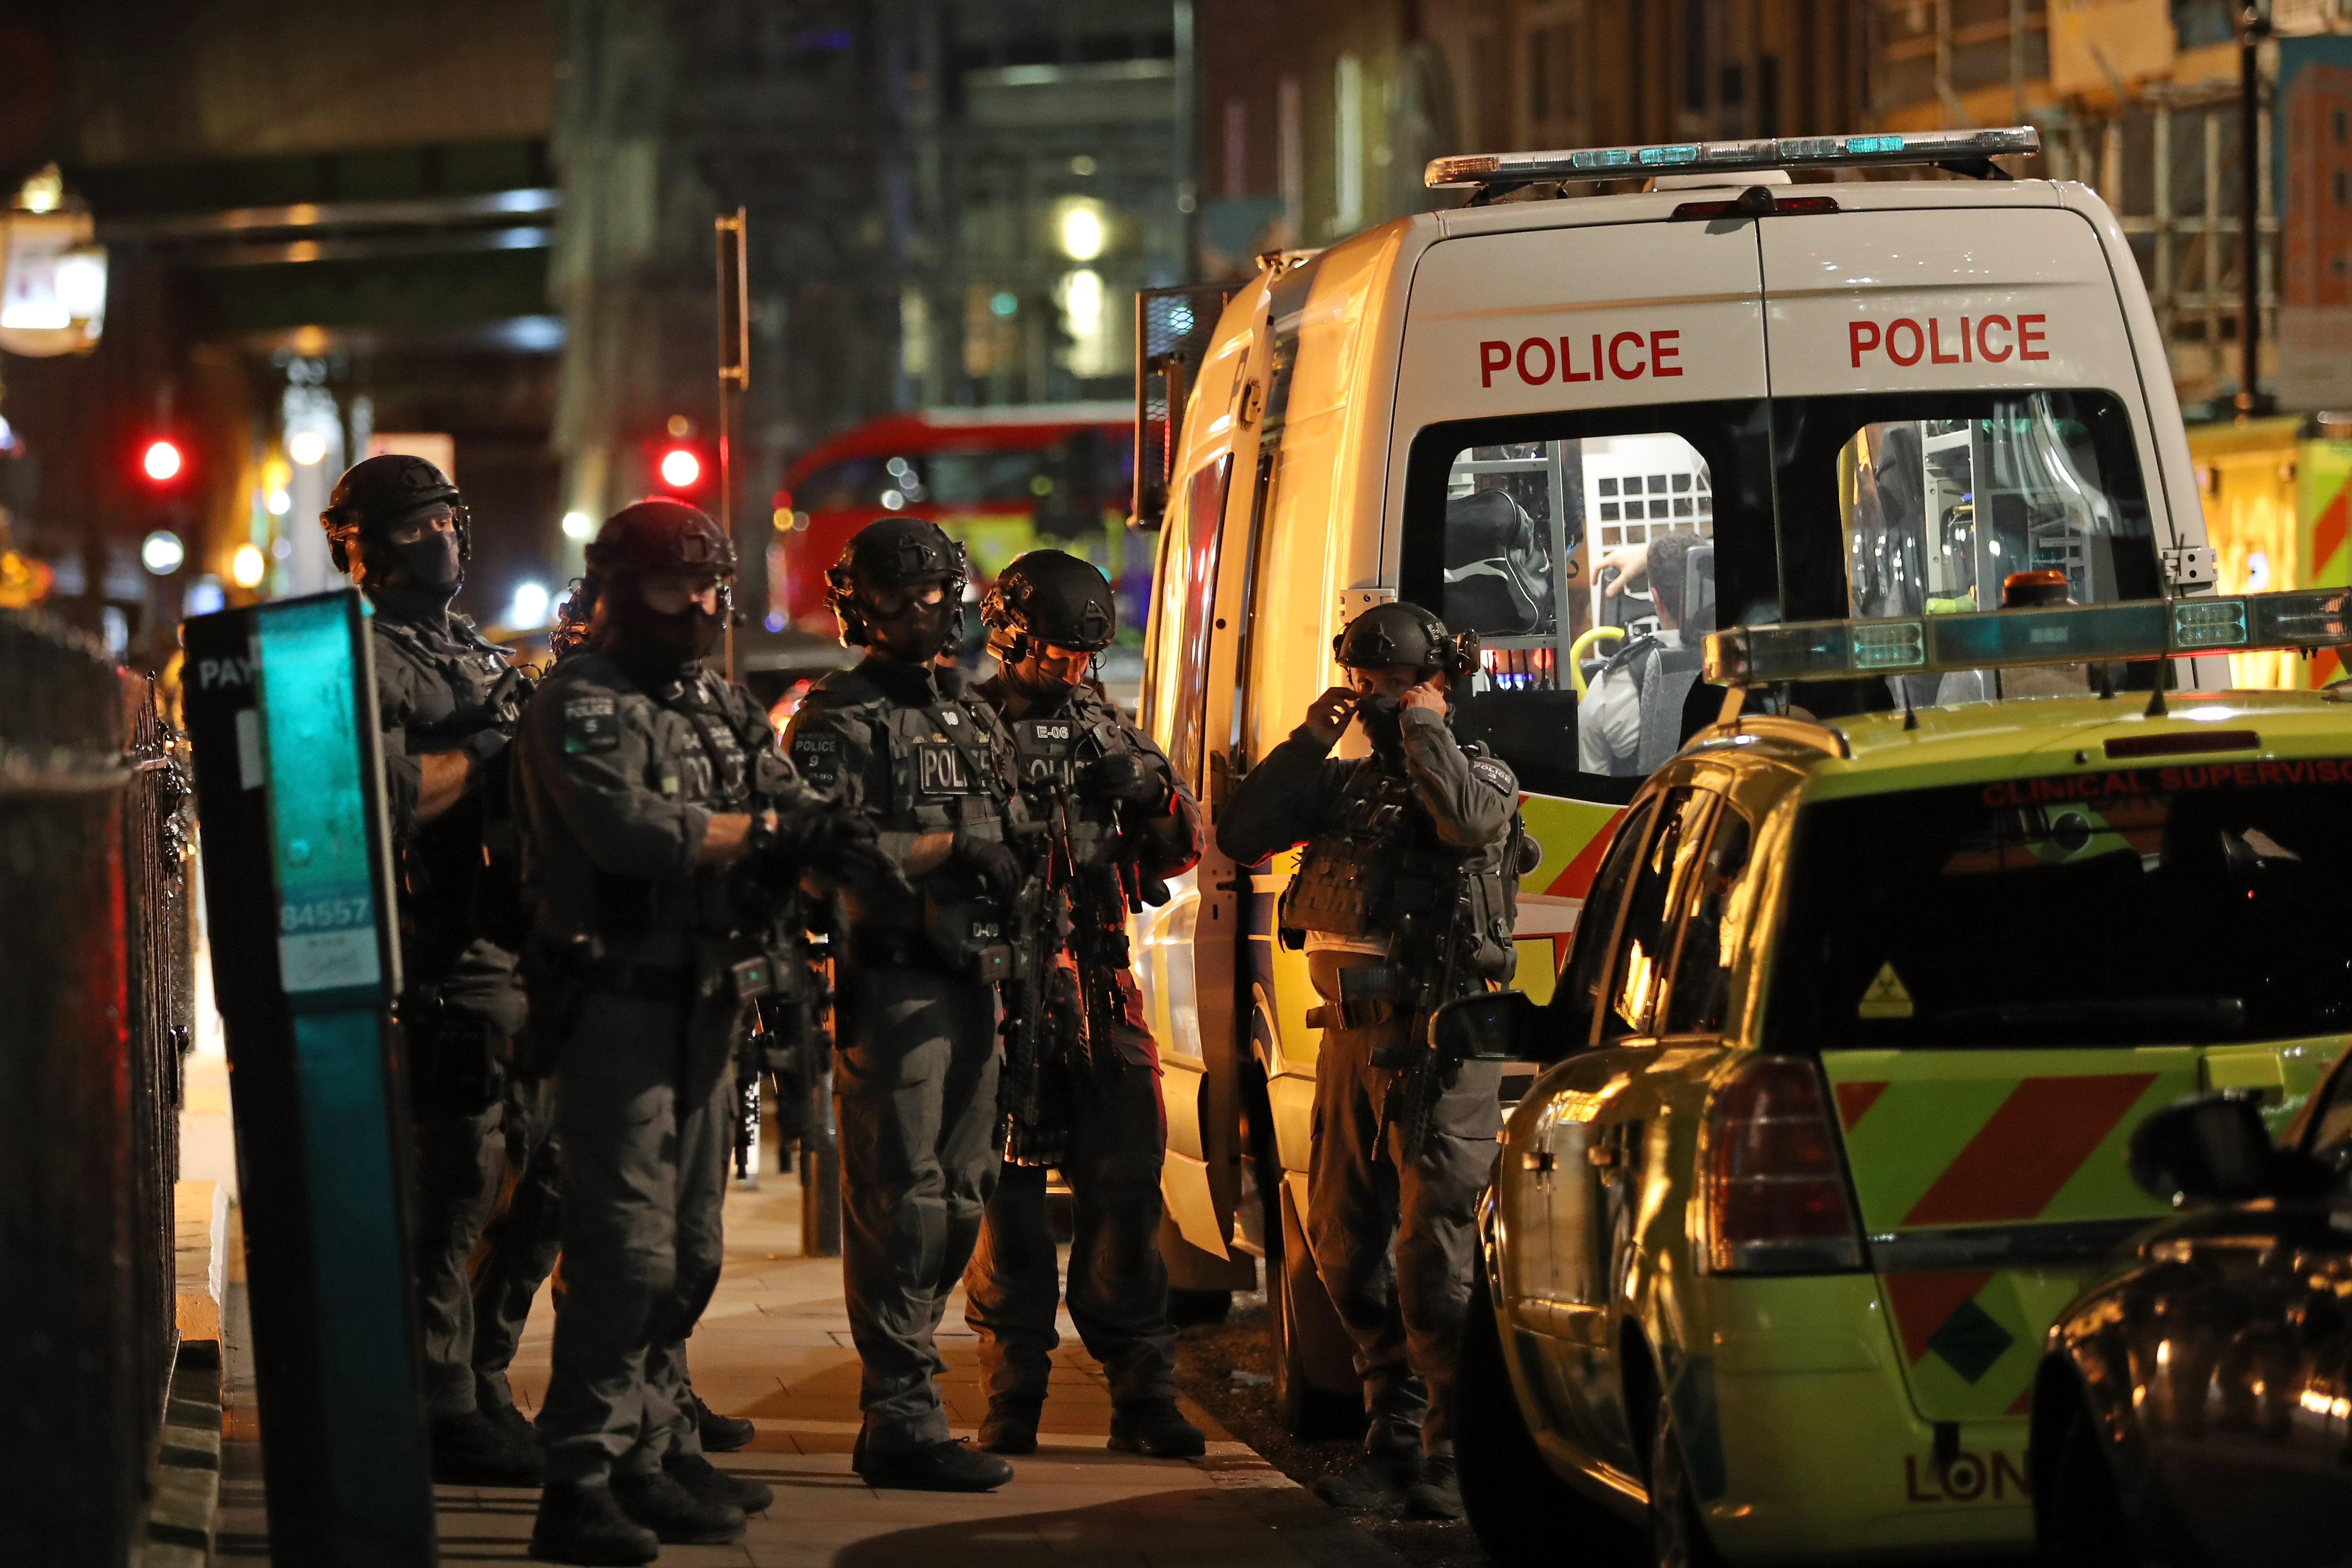 Counter-terrorism special forces are seen at London Bridge on June 3, 2017 in London, England.